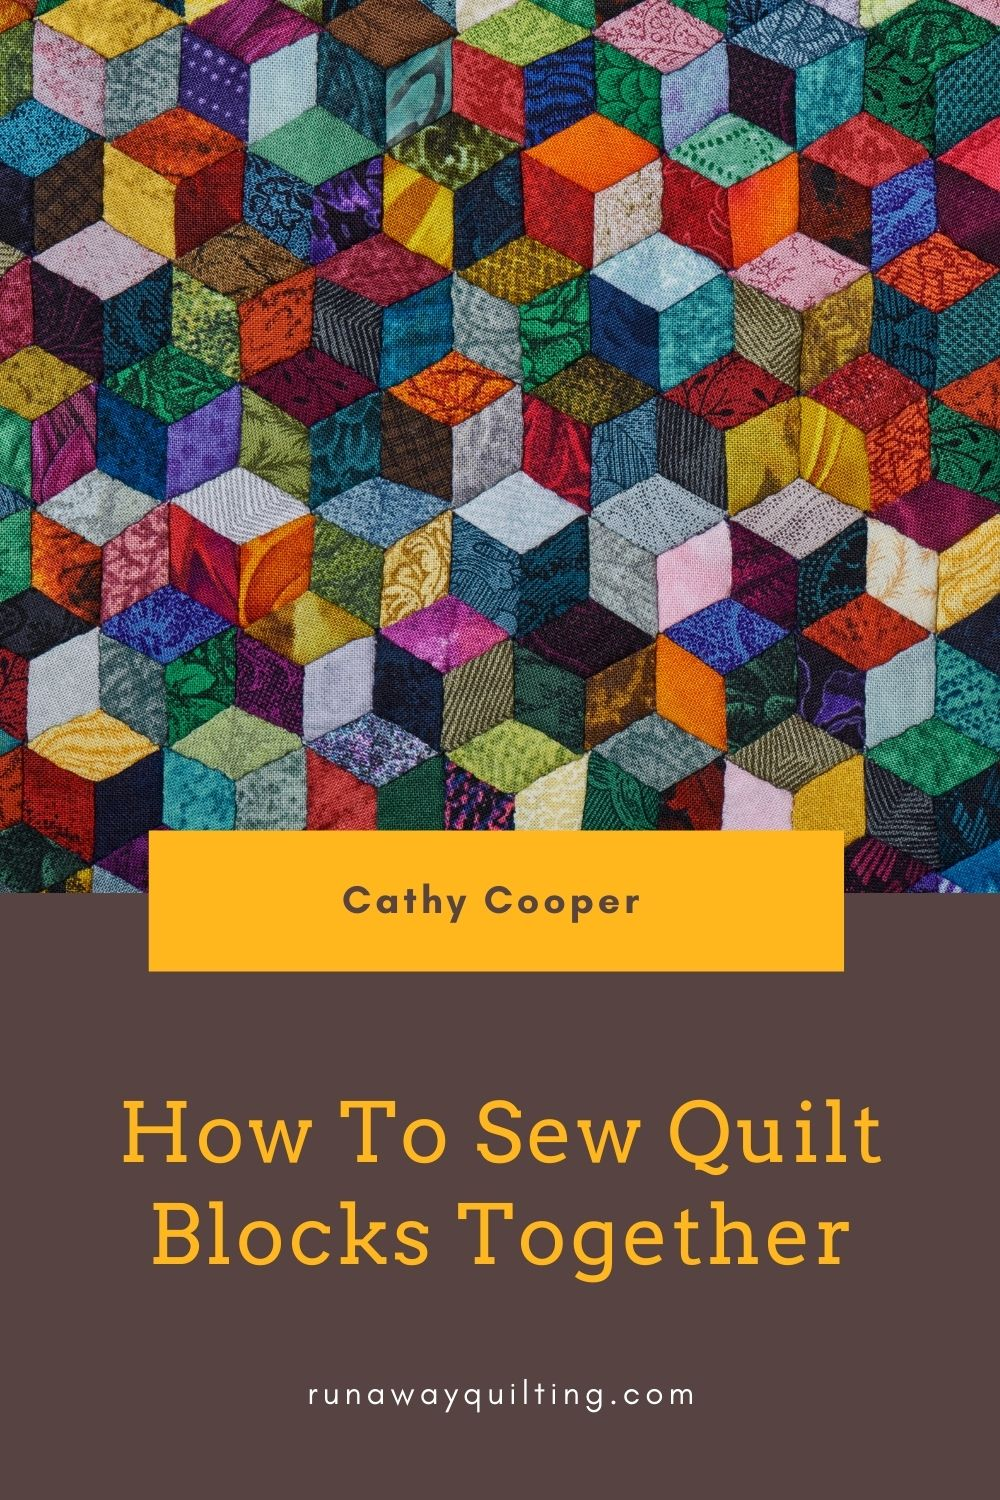 How To Sew Quilt Blocks Together